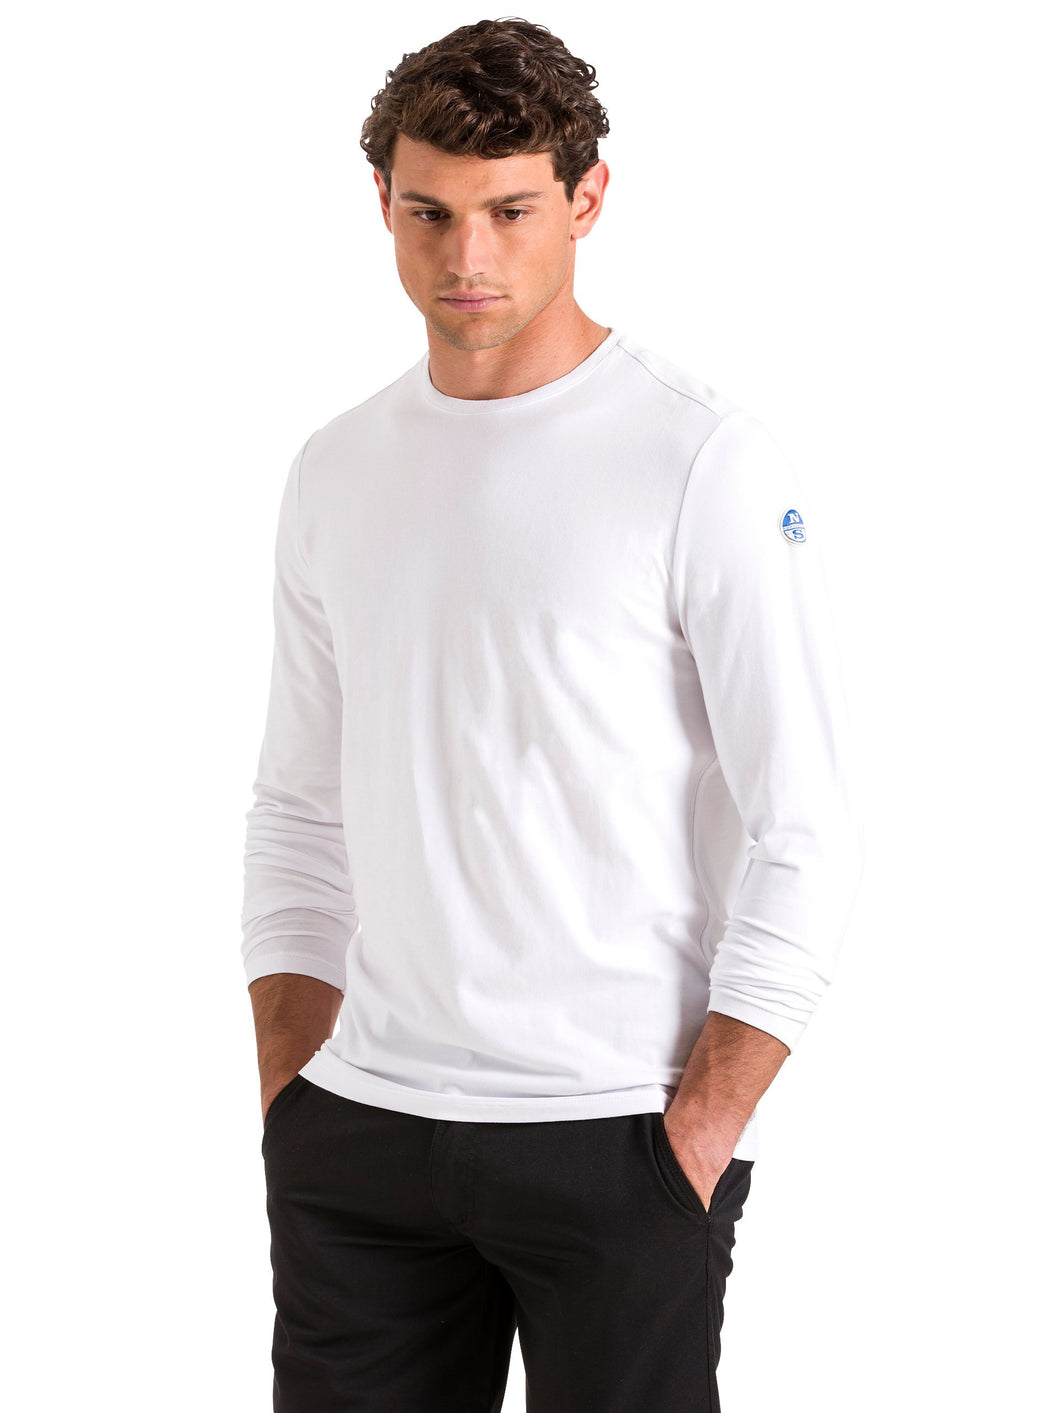 North Sails Mens Long Sleeve Cotton-Jersey T-Shirt